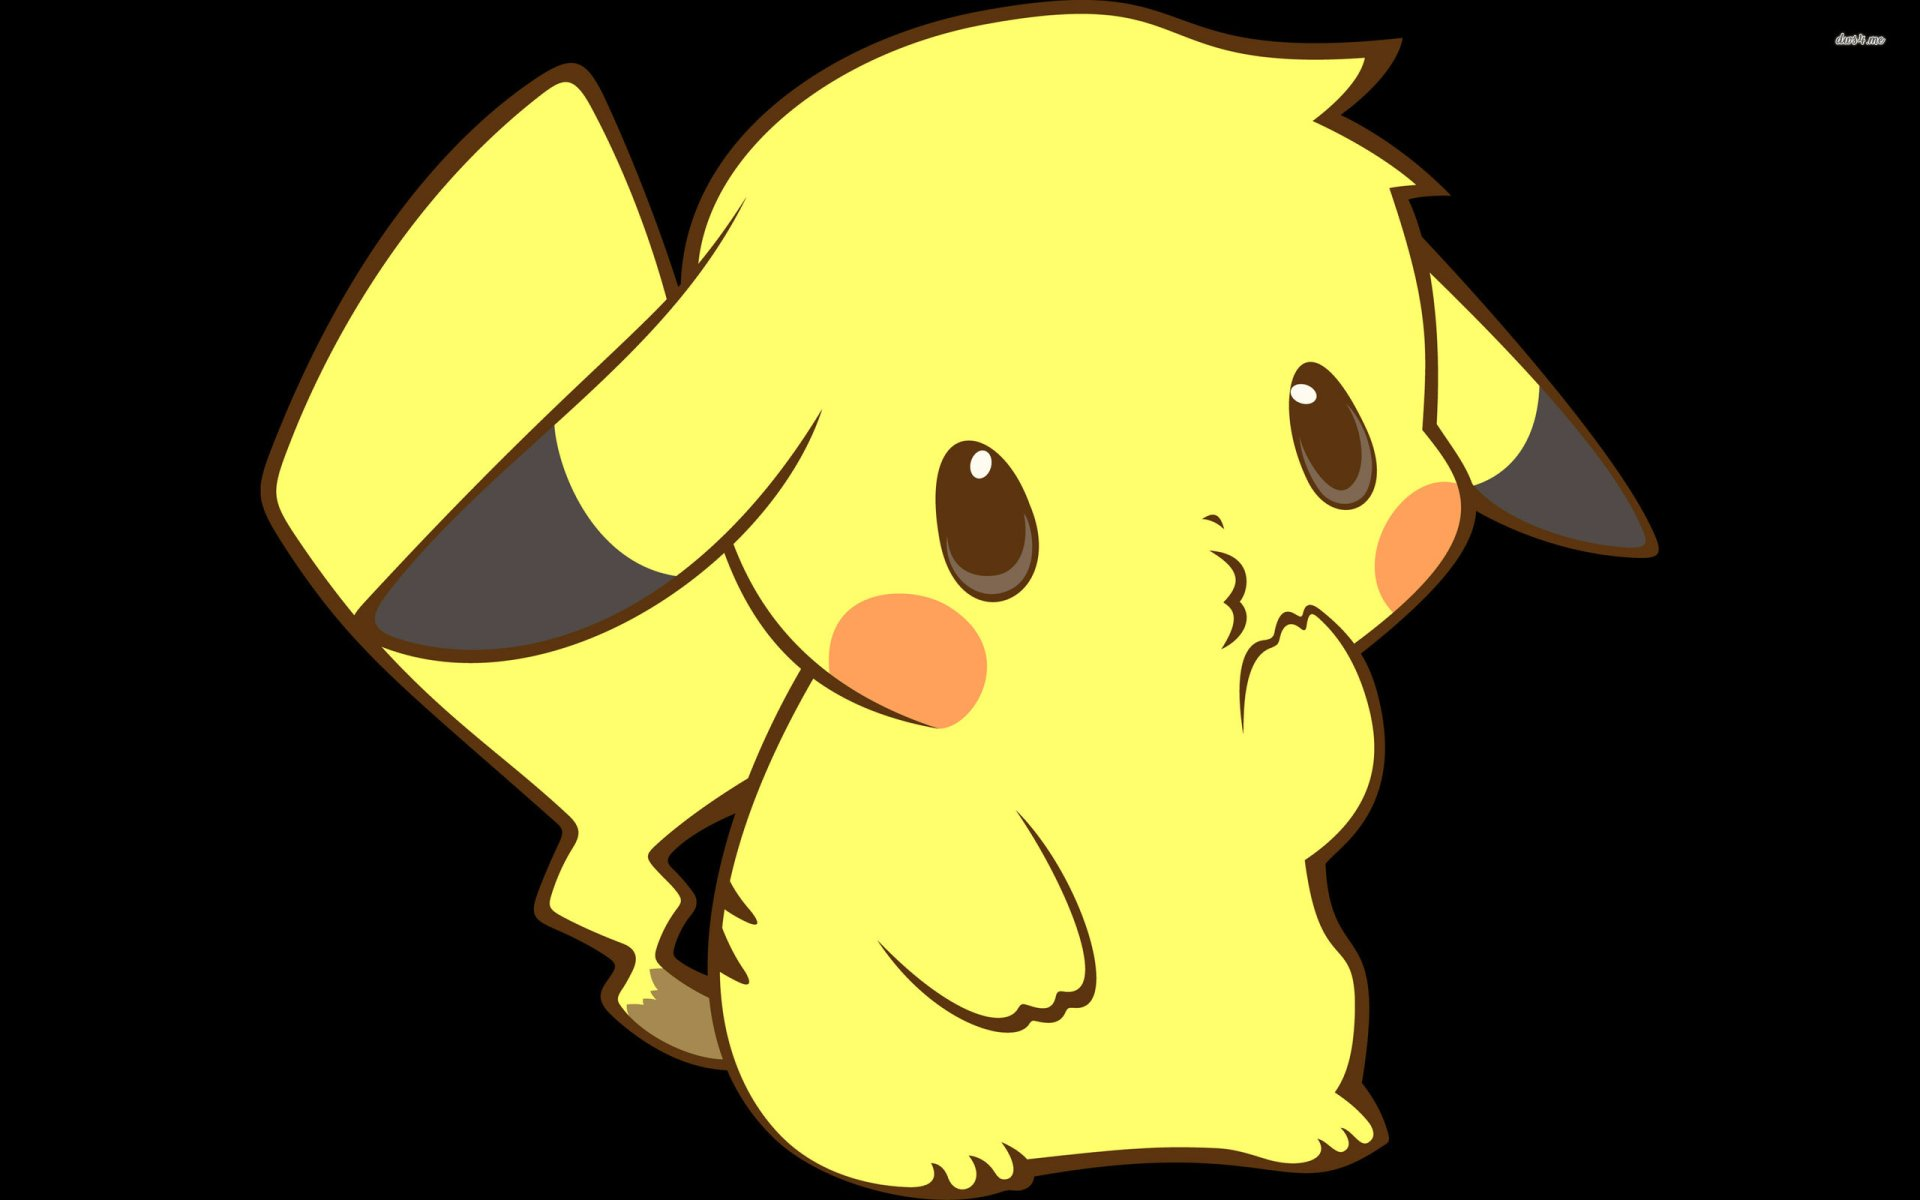 Anime - Pokémon  Pikachu Cute Wallpaper